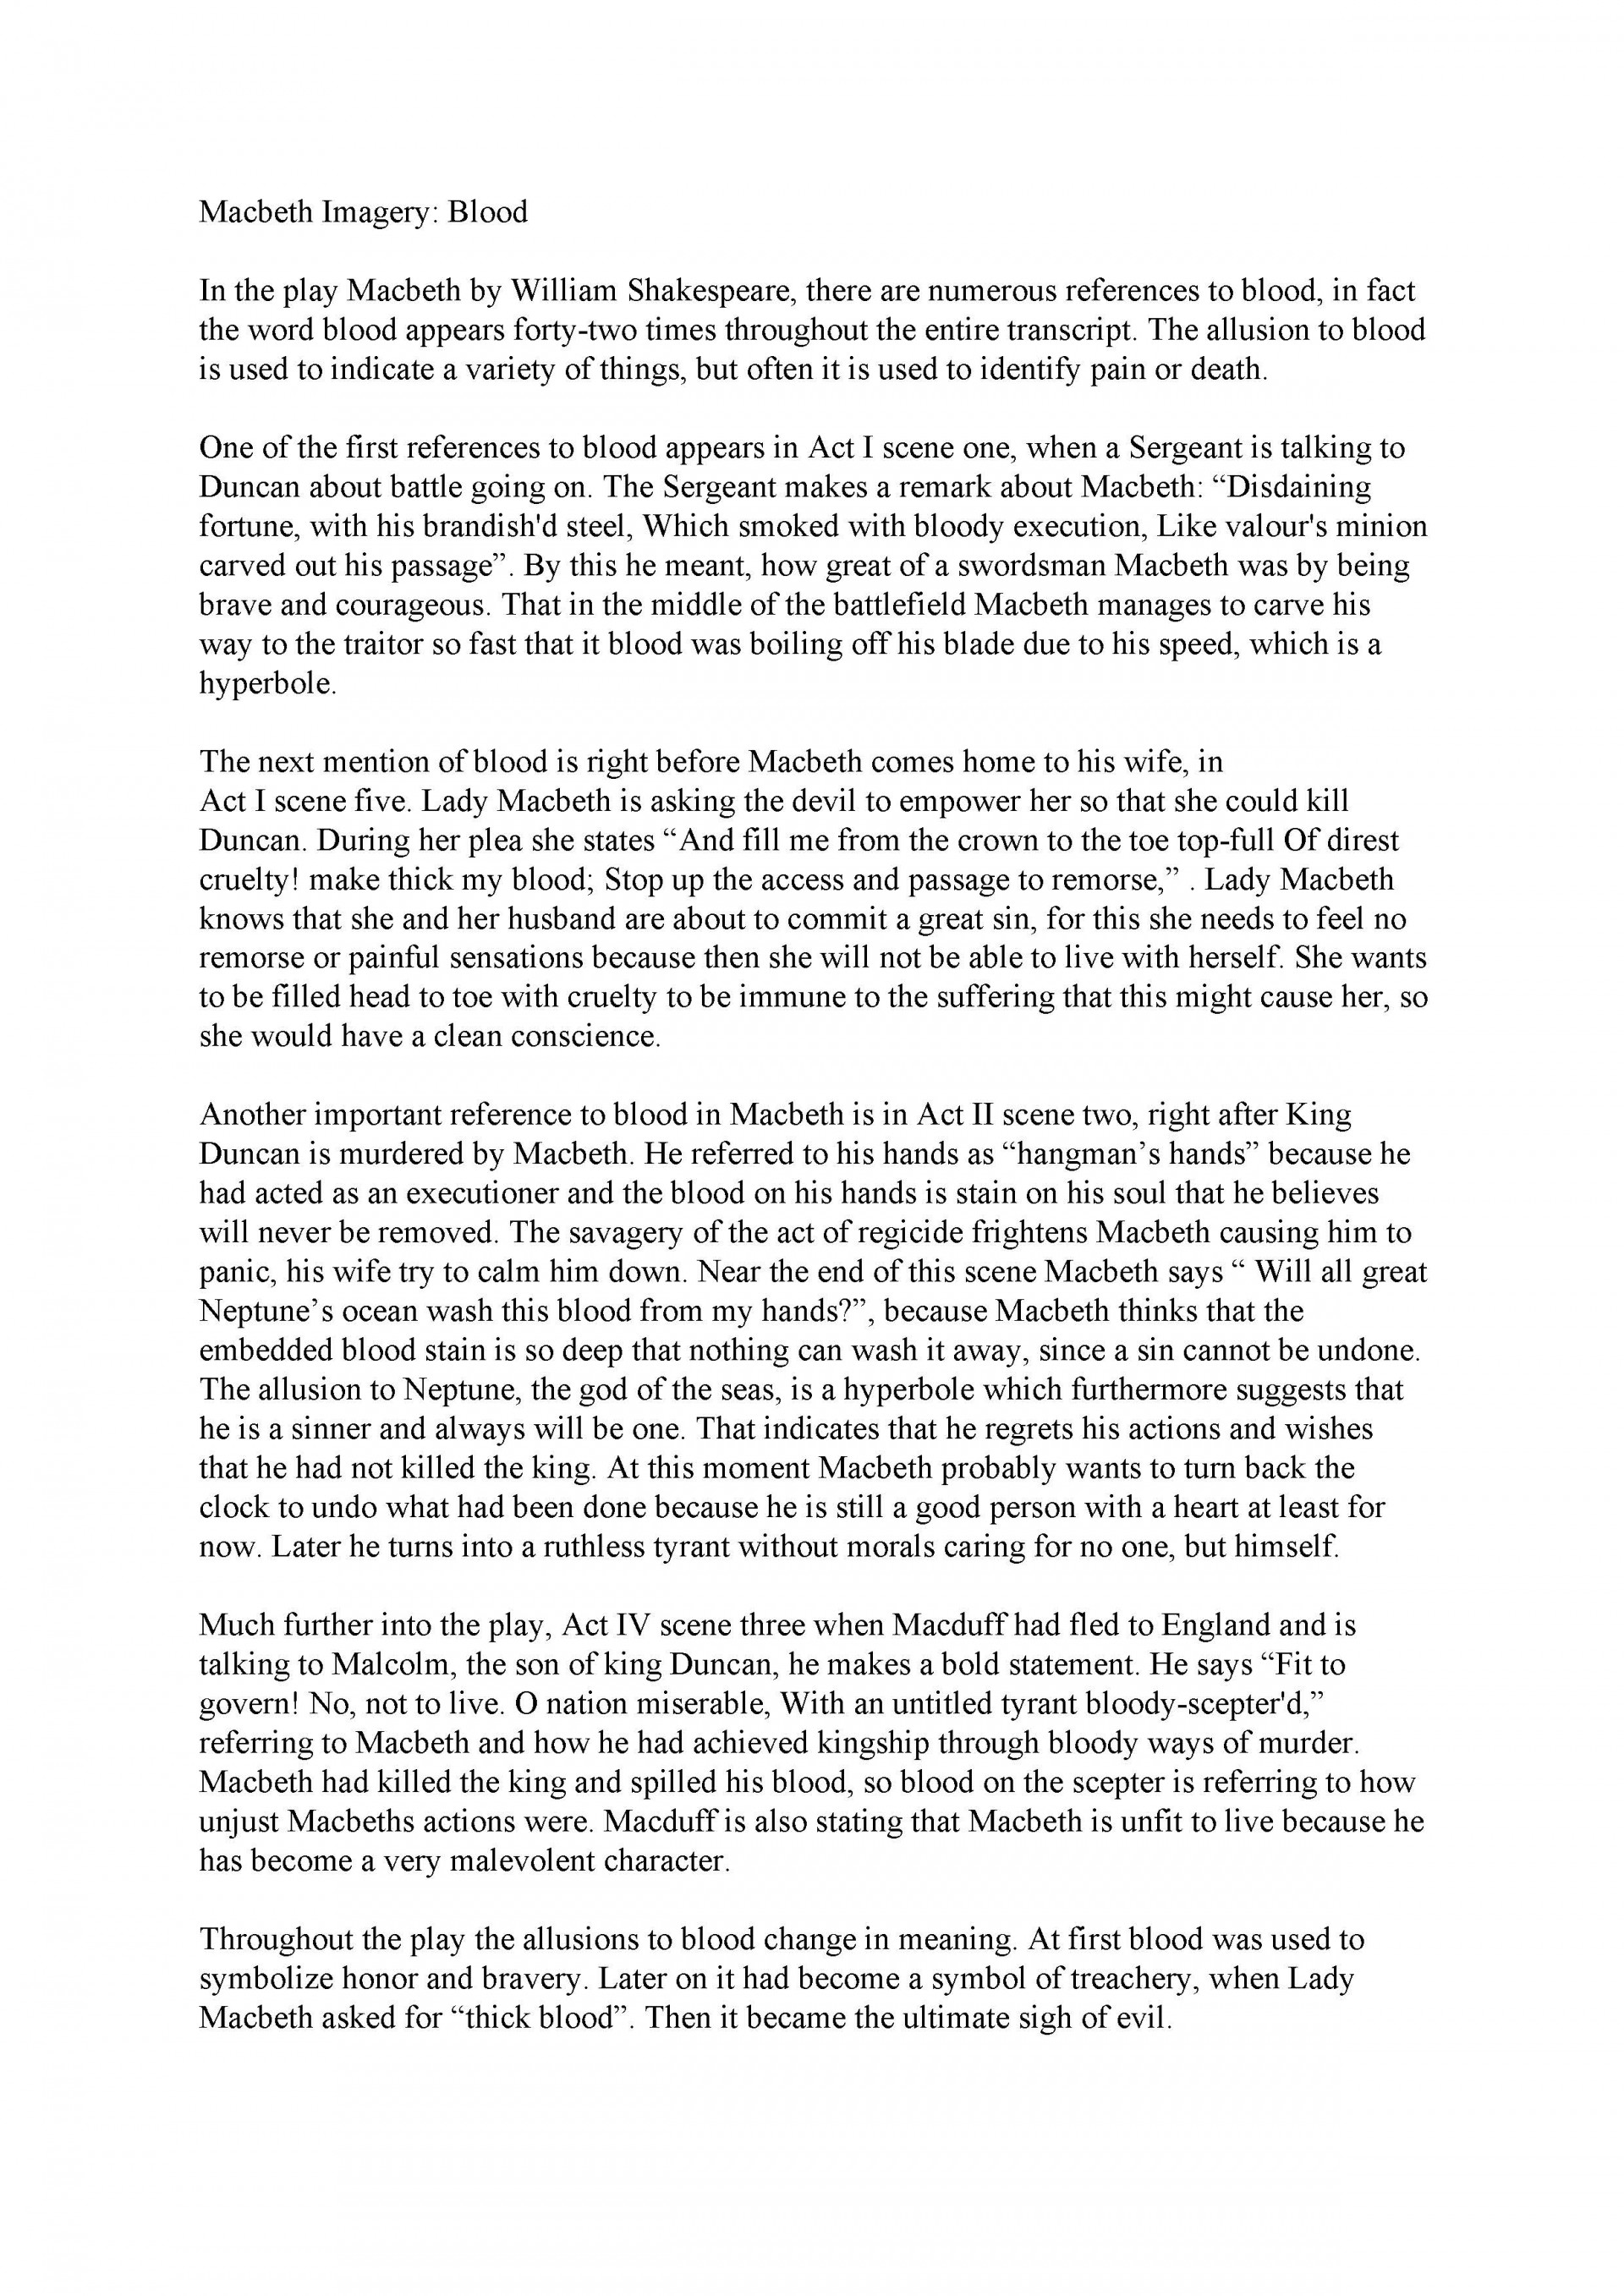 001 Essay On Macbeth Example Marvelous And Lady Macbeth's Relationship Literary As A Tragic Hero Plan 1920